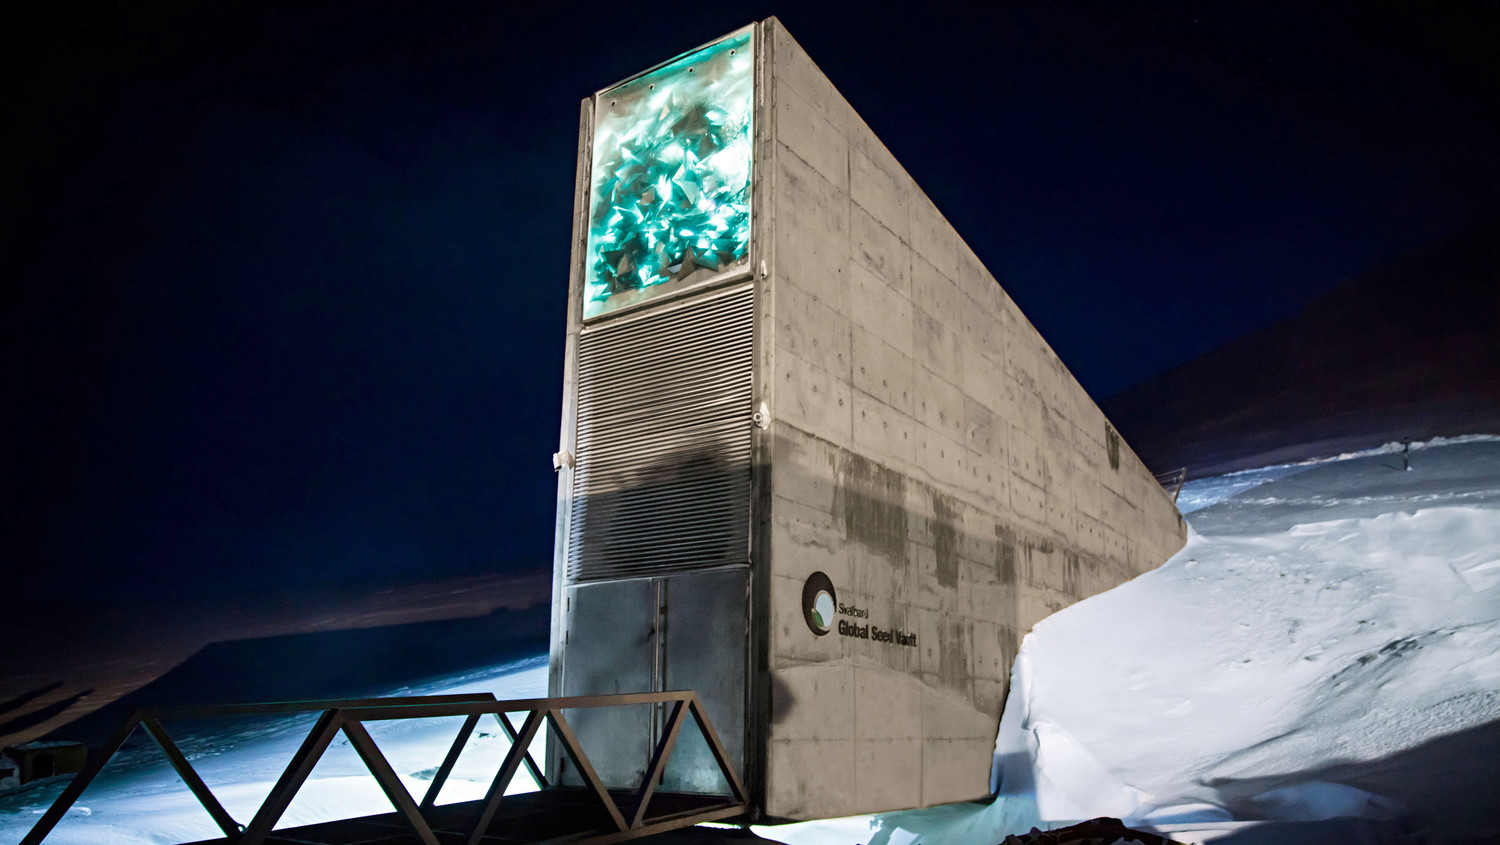 the entrance to the svalbard seed vault protruding from snow